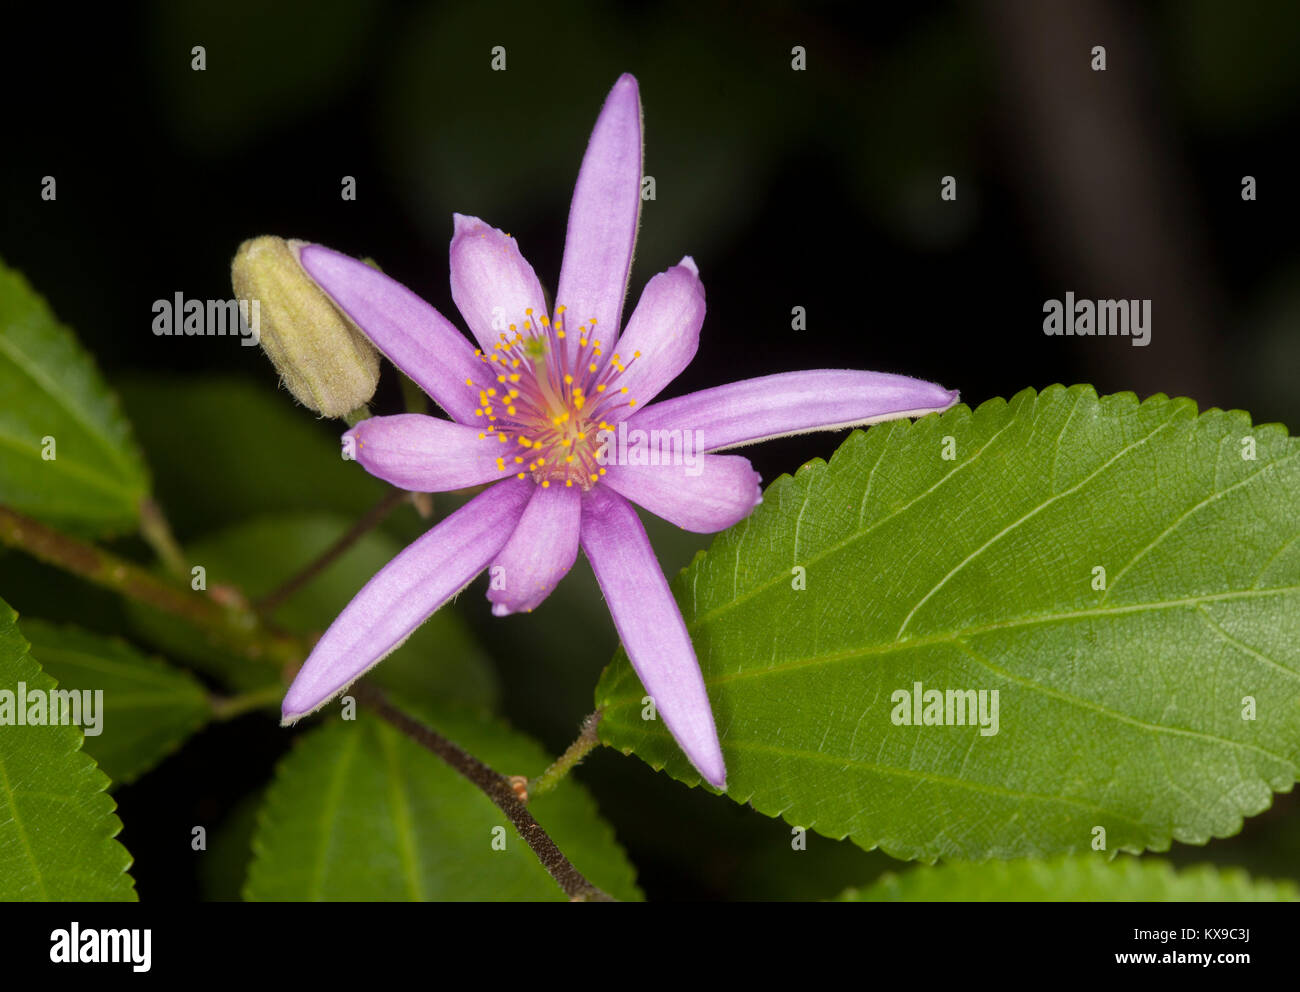 Mauve Pink Star Shaped Flower And Green Leaves Of Evergreen Shrub